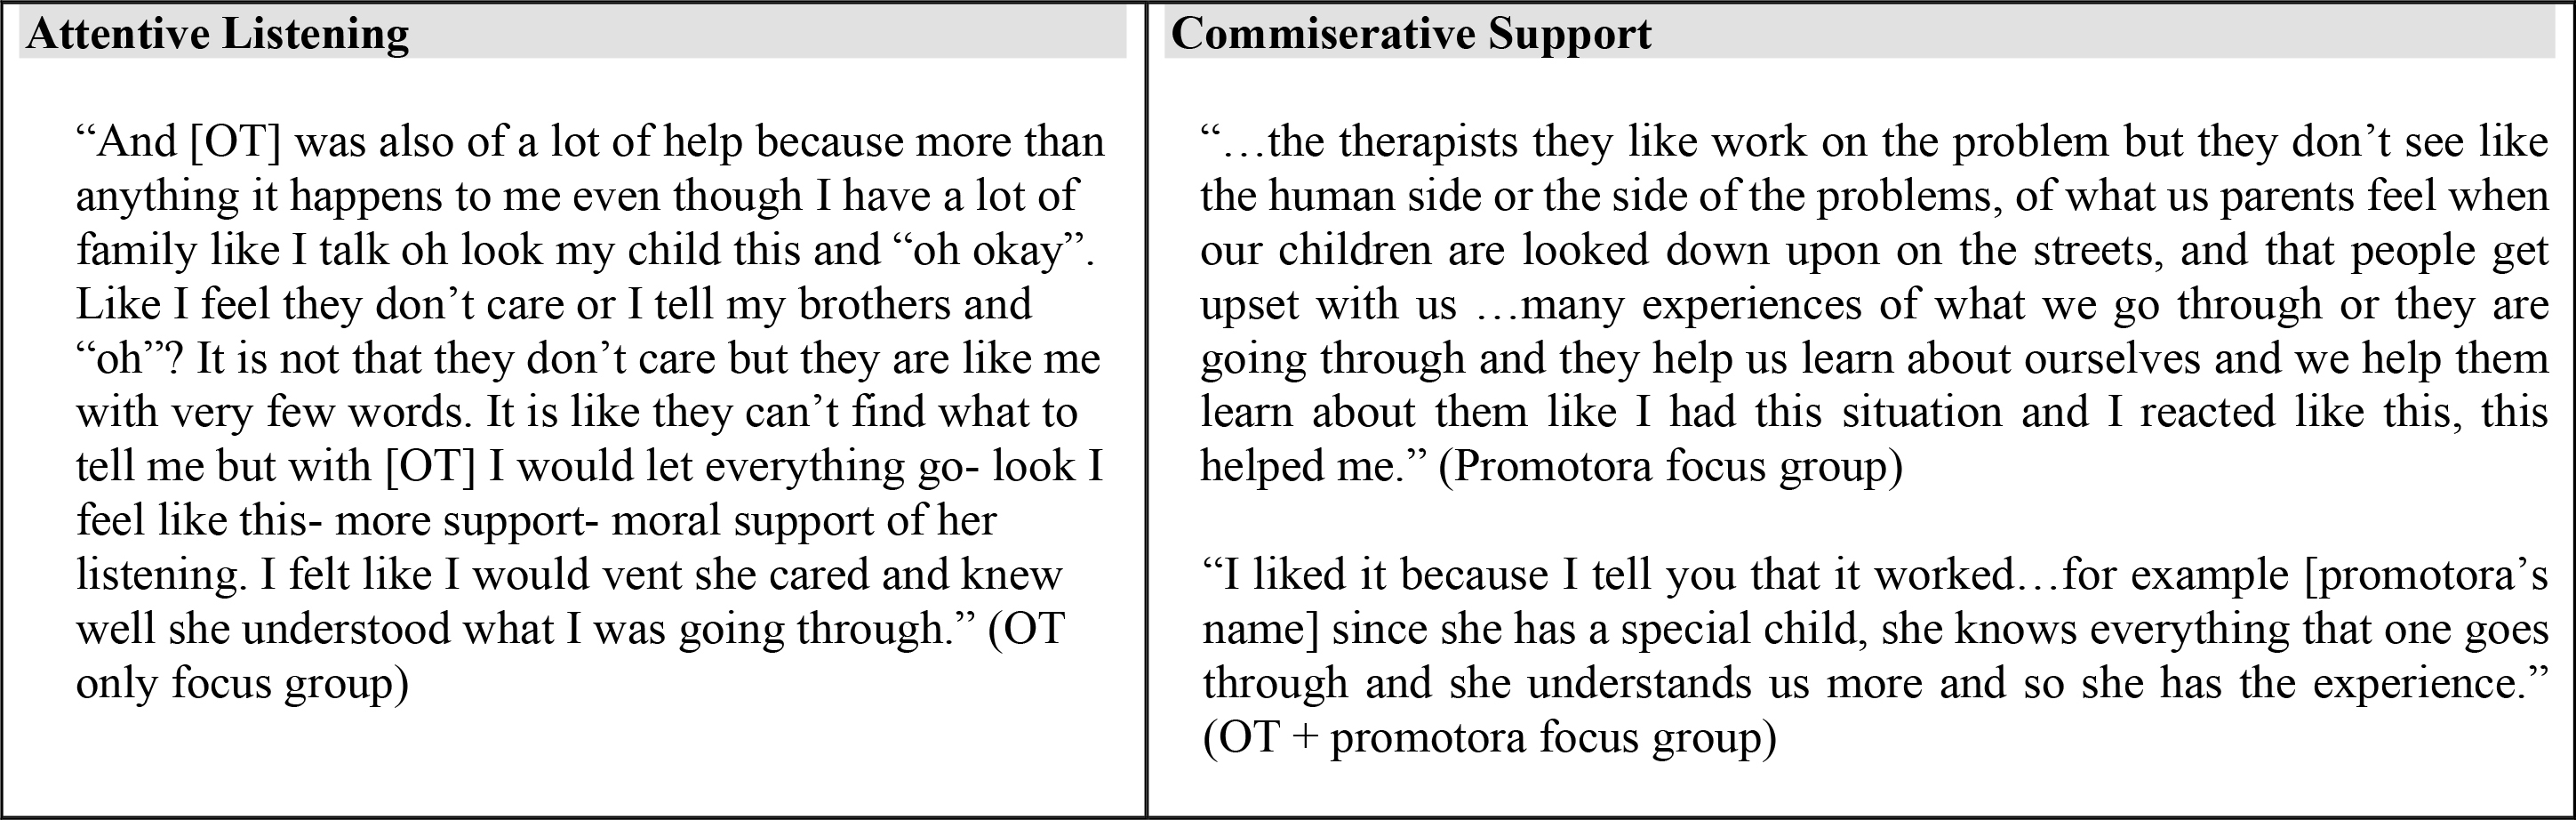 Examples of Different Forms of Support offered by the Occupational Therapist and the Promotoras